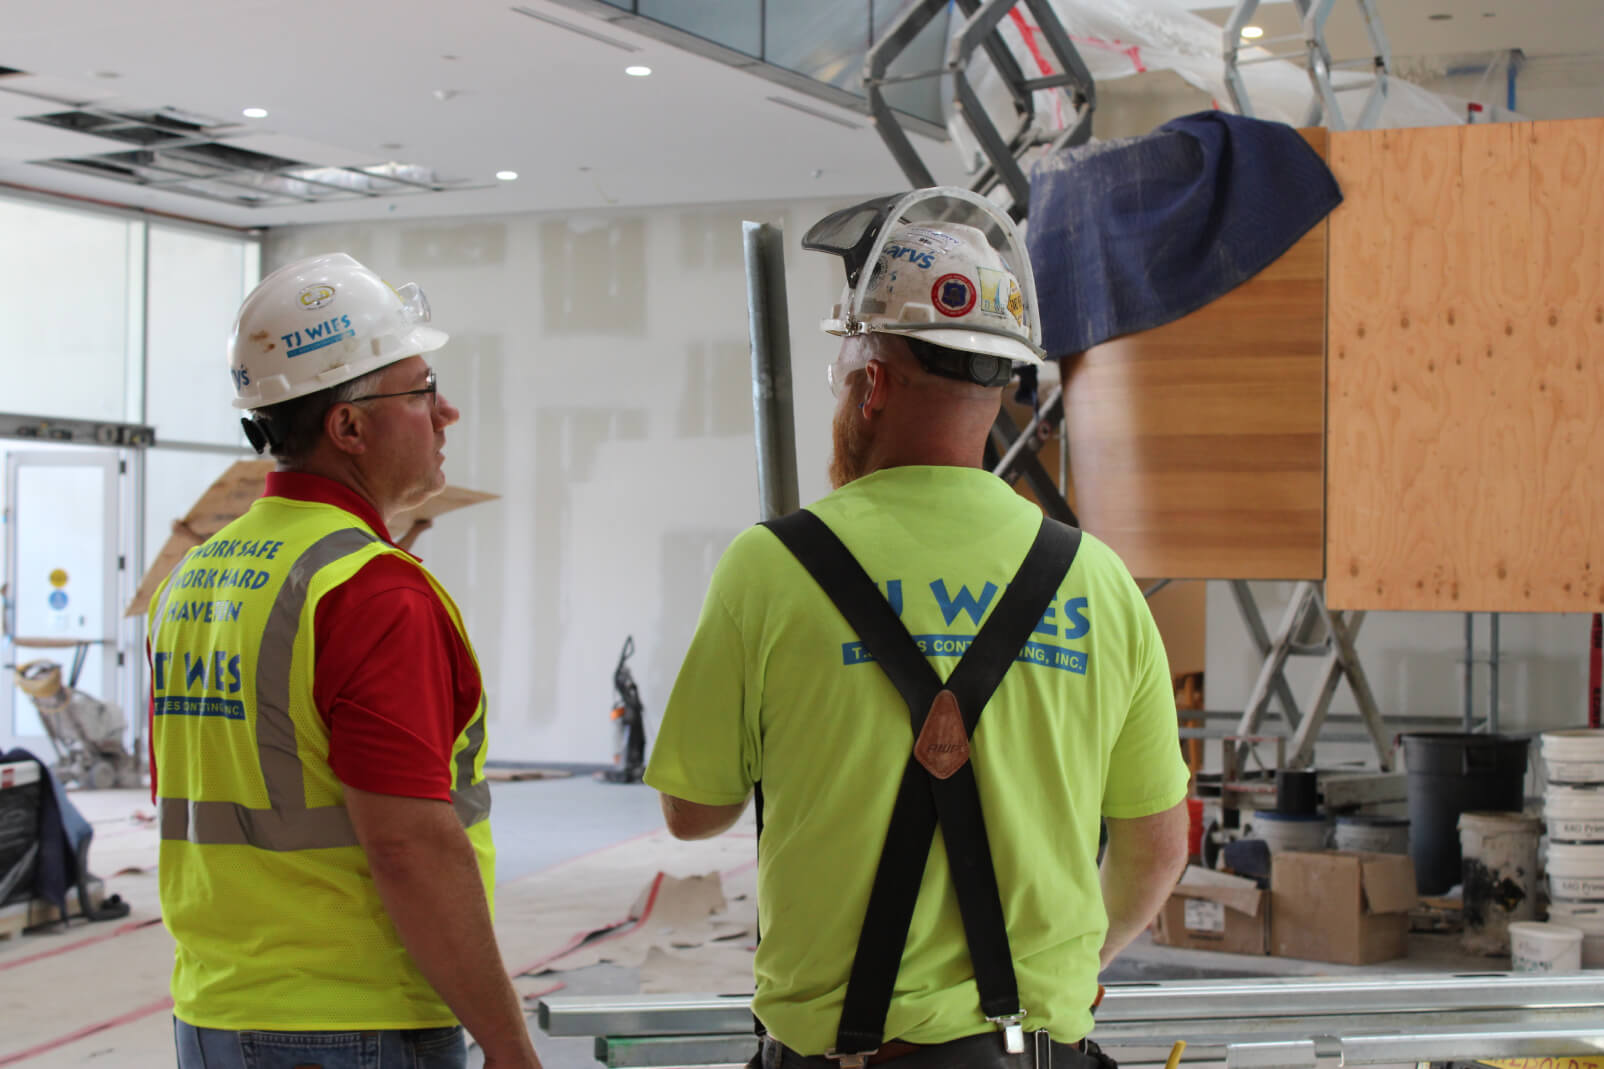 Field Supervision With award winning experience and commitment to an injury free workplace, TJ Wies provides valuable construction supervision.